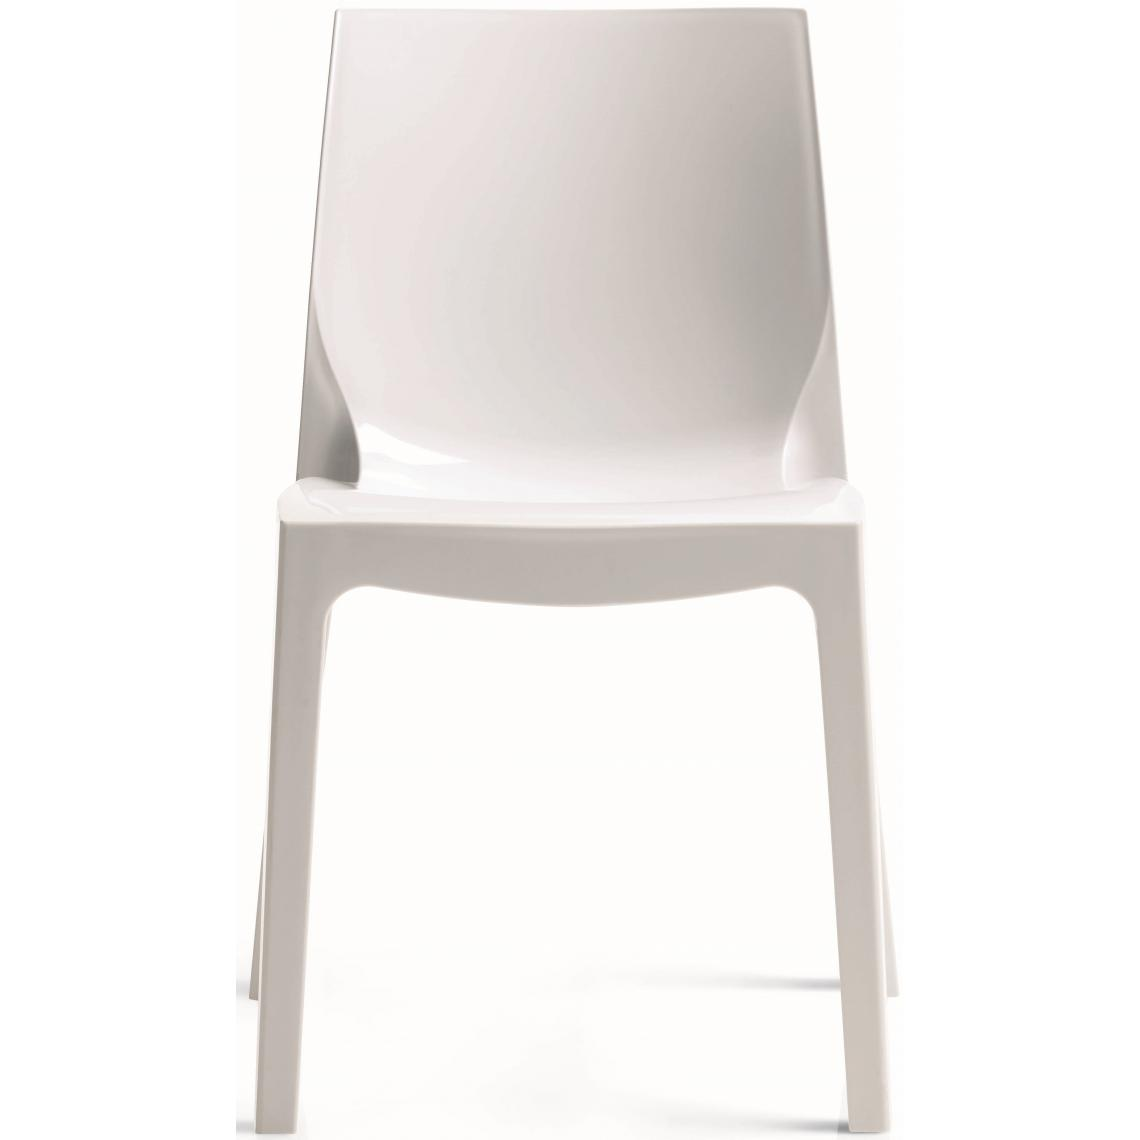 Chaise Design Blanche Laquee LADY 3Suisses Mobilier Deco